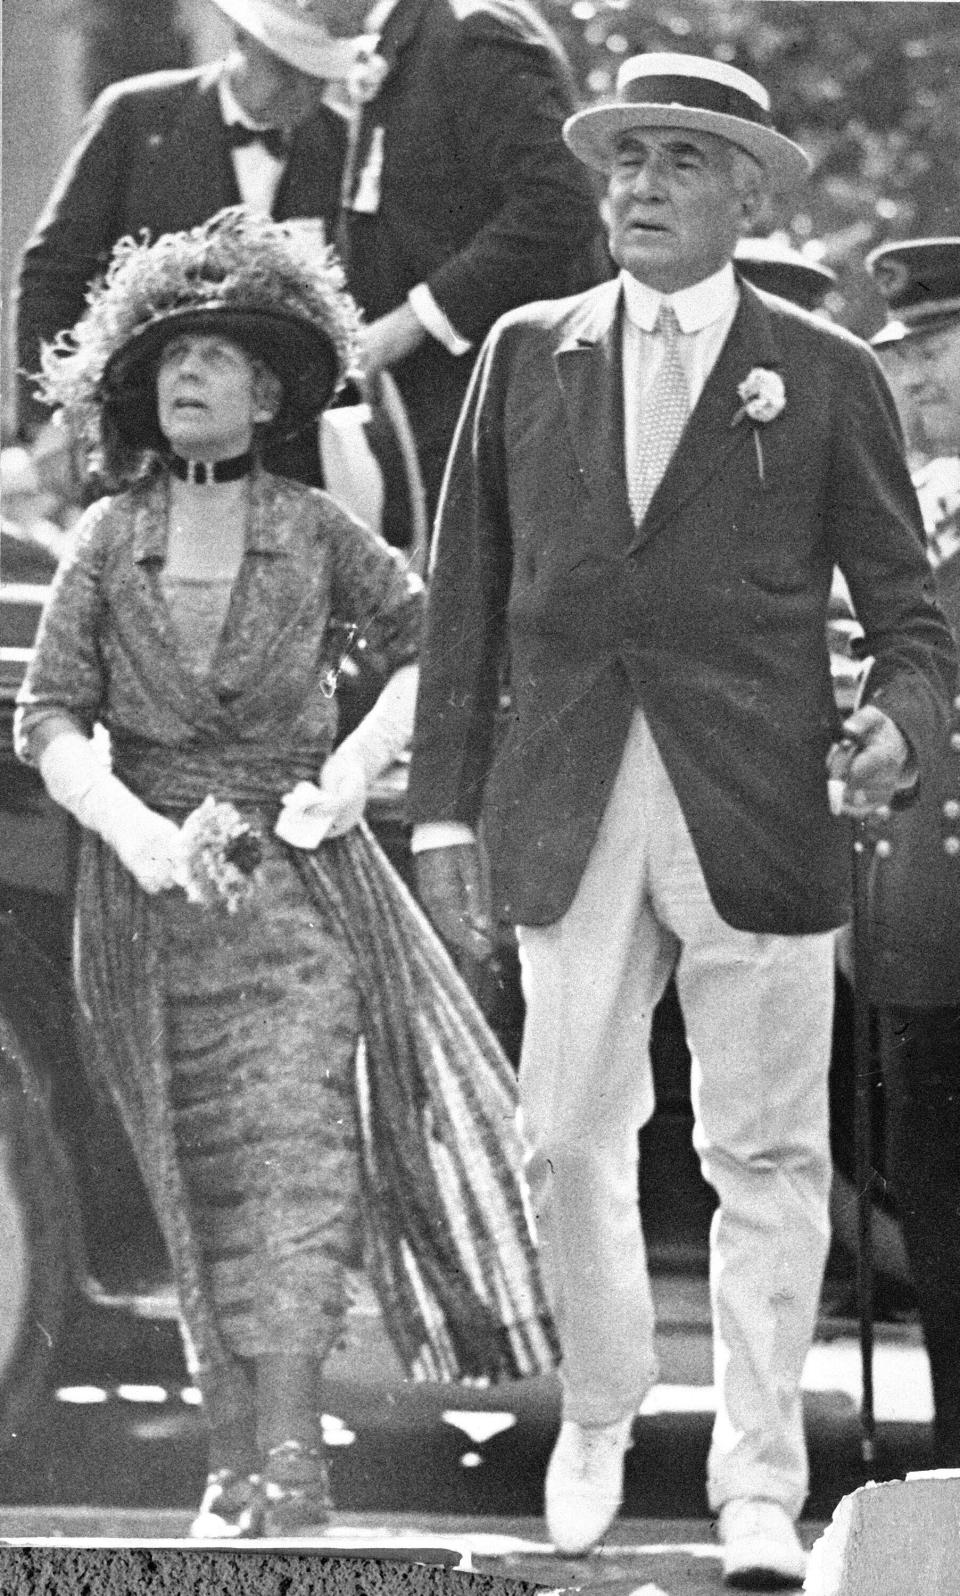 FILE-This July 4, 1923 file photo shows the 29th President of the United States, Warren G. Harding, and his wife, first lady Florence Kling Harding. The centennial of President Warren G. Harding's election was marked Monday in his home county in Ohio with a modest radio tribute rather than the grand museum and homestead re-opening envisioned before the pandemic. Harding, a Republican, was elected Nov. 2, 1920, his 55th birthday, succeeding Democrat Woodrow Wilson. He beat a fellow Ohio newspaper publisher, James Cox, on a platform of restoring normalcy after World War I and the 1918 influenza pandemic. (AP Photo, File)